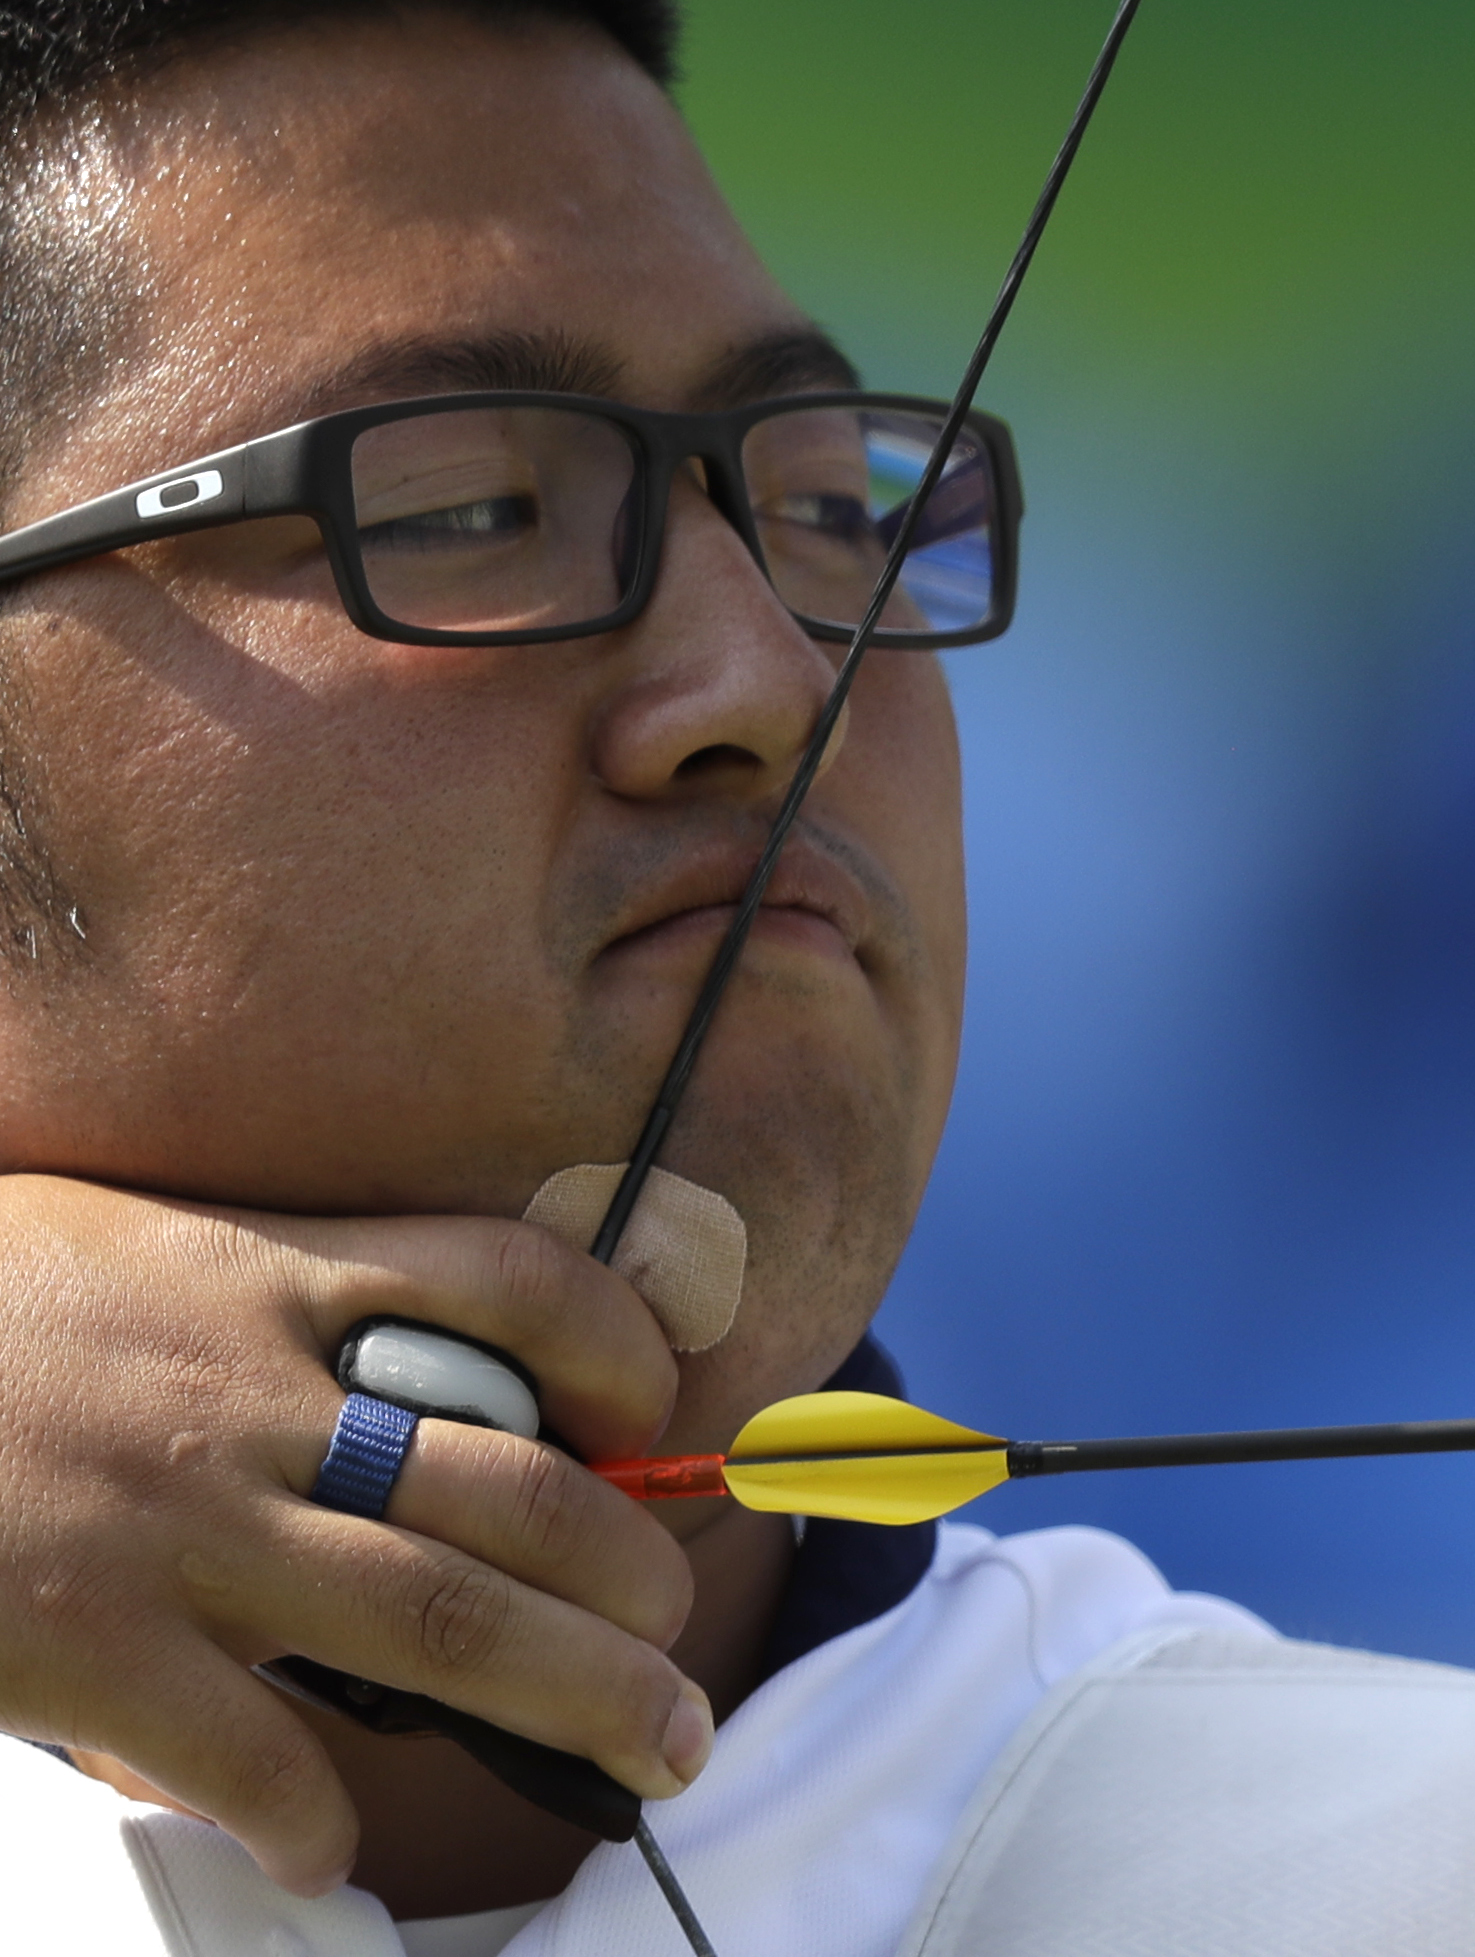 South Korea's Kim Woo-jin releases his arrow during his match against Indonesia's Riau Ega Agatha in an elimination round of the individual archery competition at the Sambadrome venue during the 2016 Summer Olympics in Rio de Janeiro, Brazil, Monday, Aug.